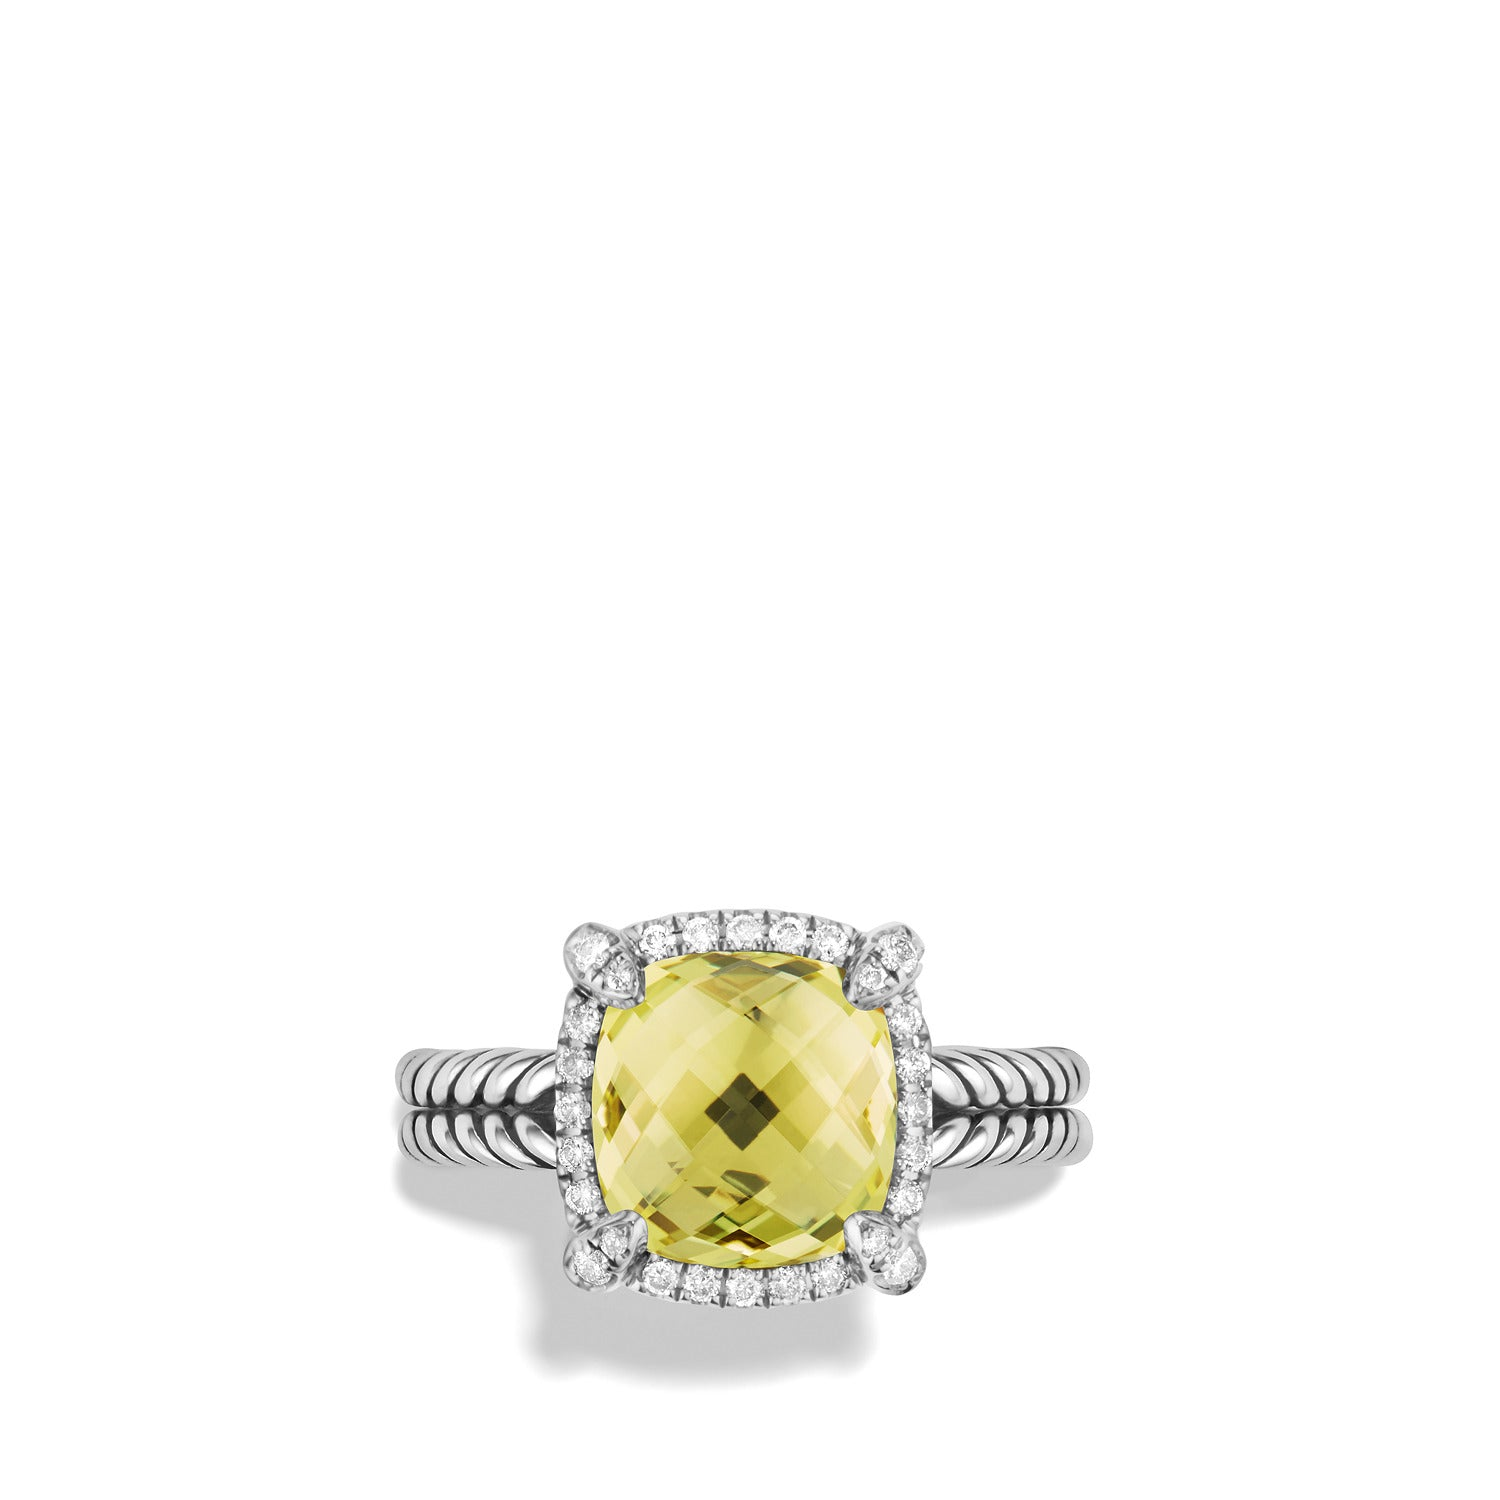 Chatelaine Pave Bezel Ring with Lemon Citrine and Diamonds, 9mm